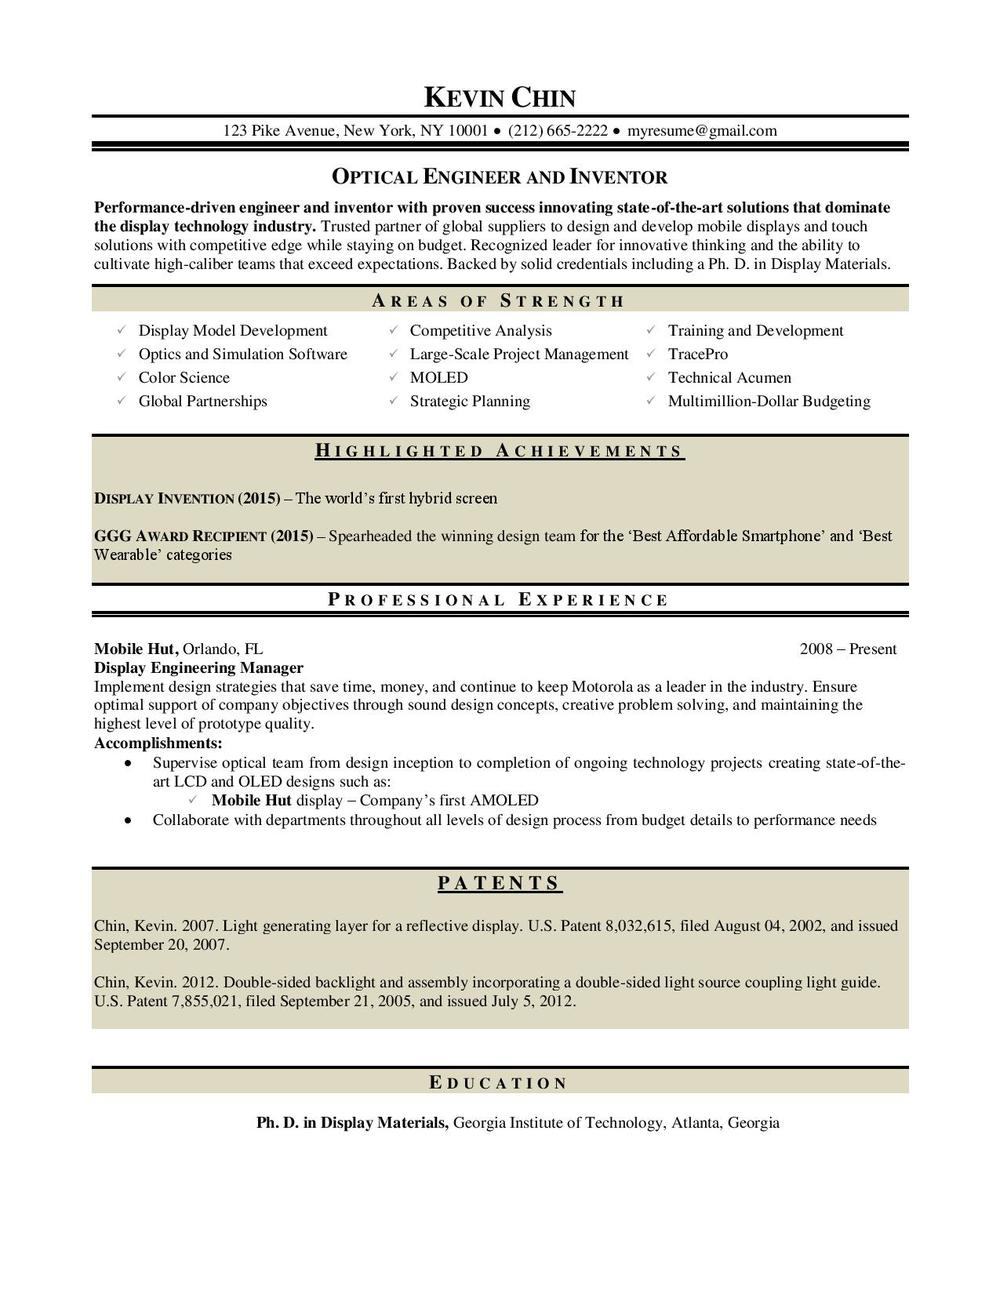 resume newbie certified professional resume writing services professional resume services jpg